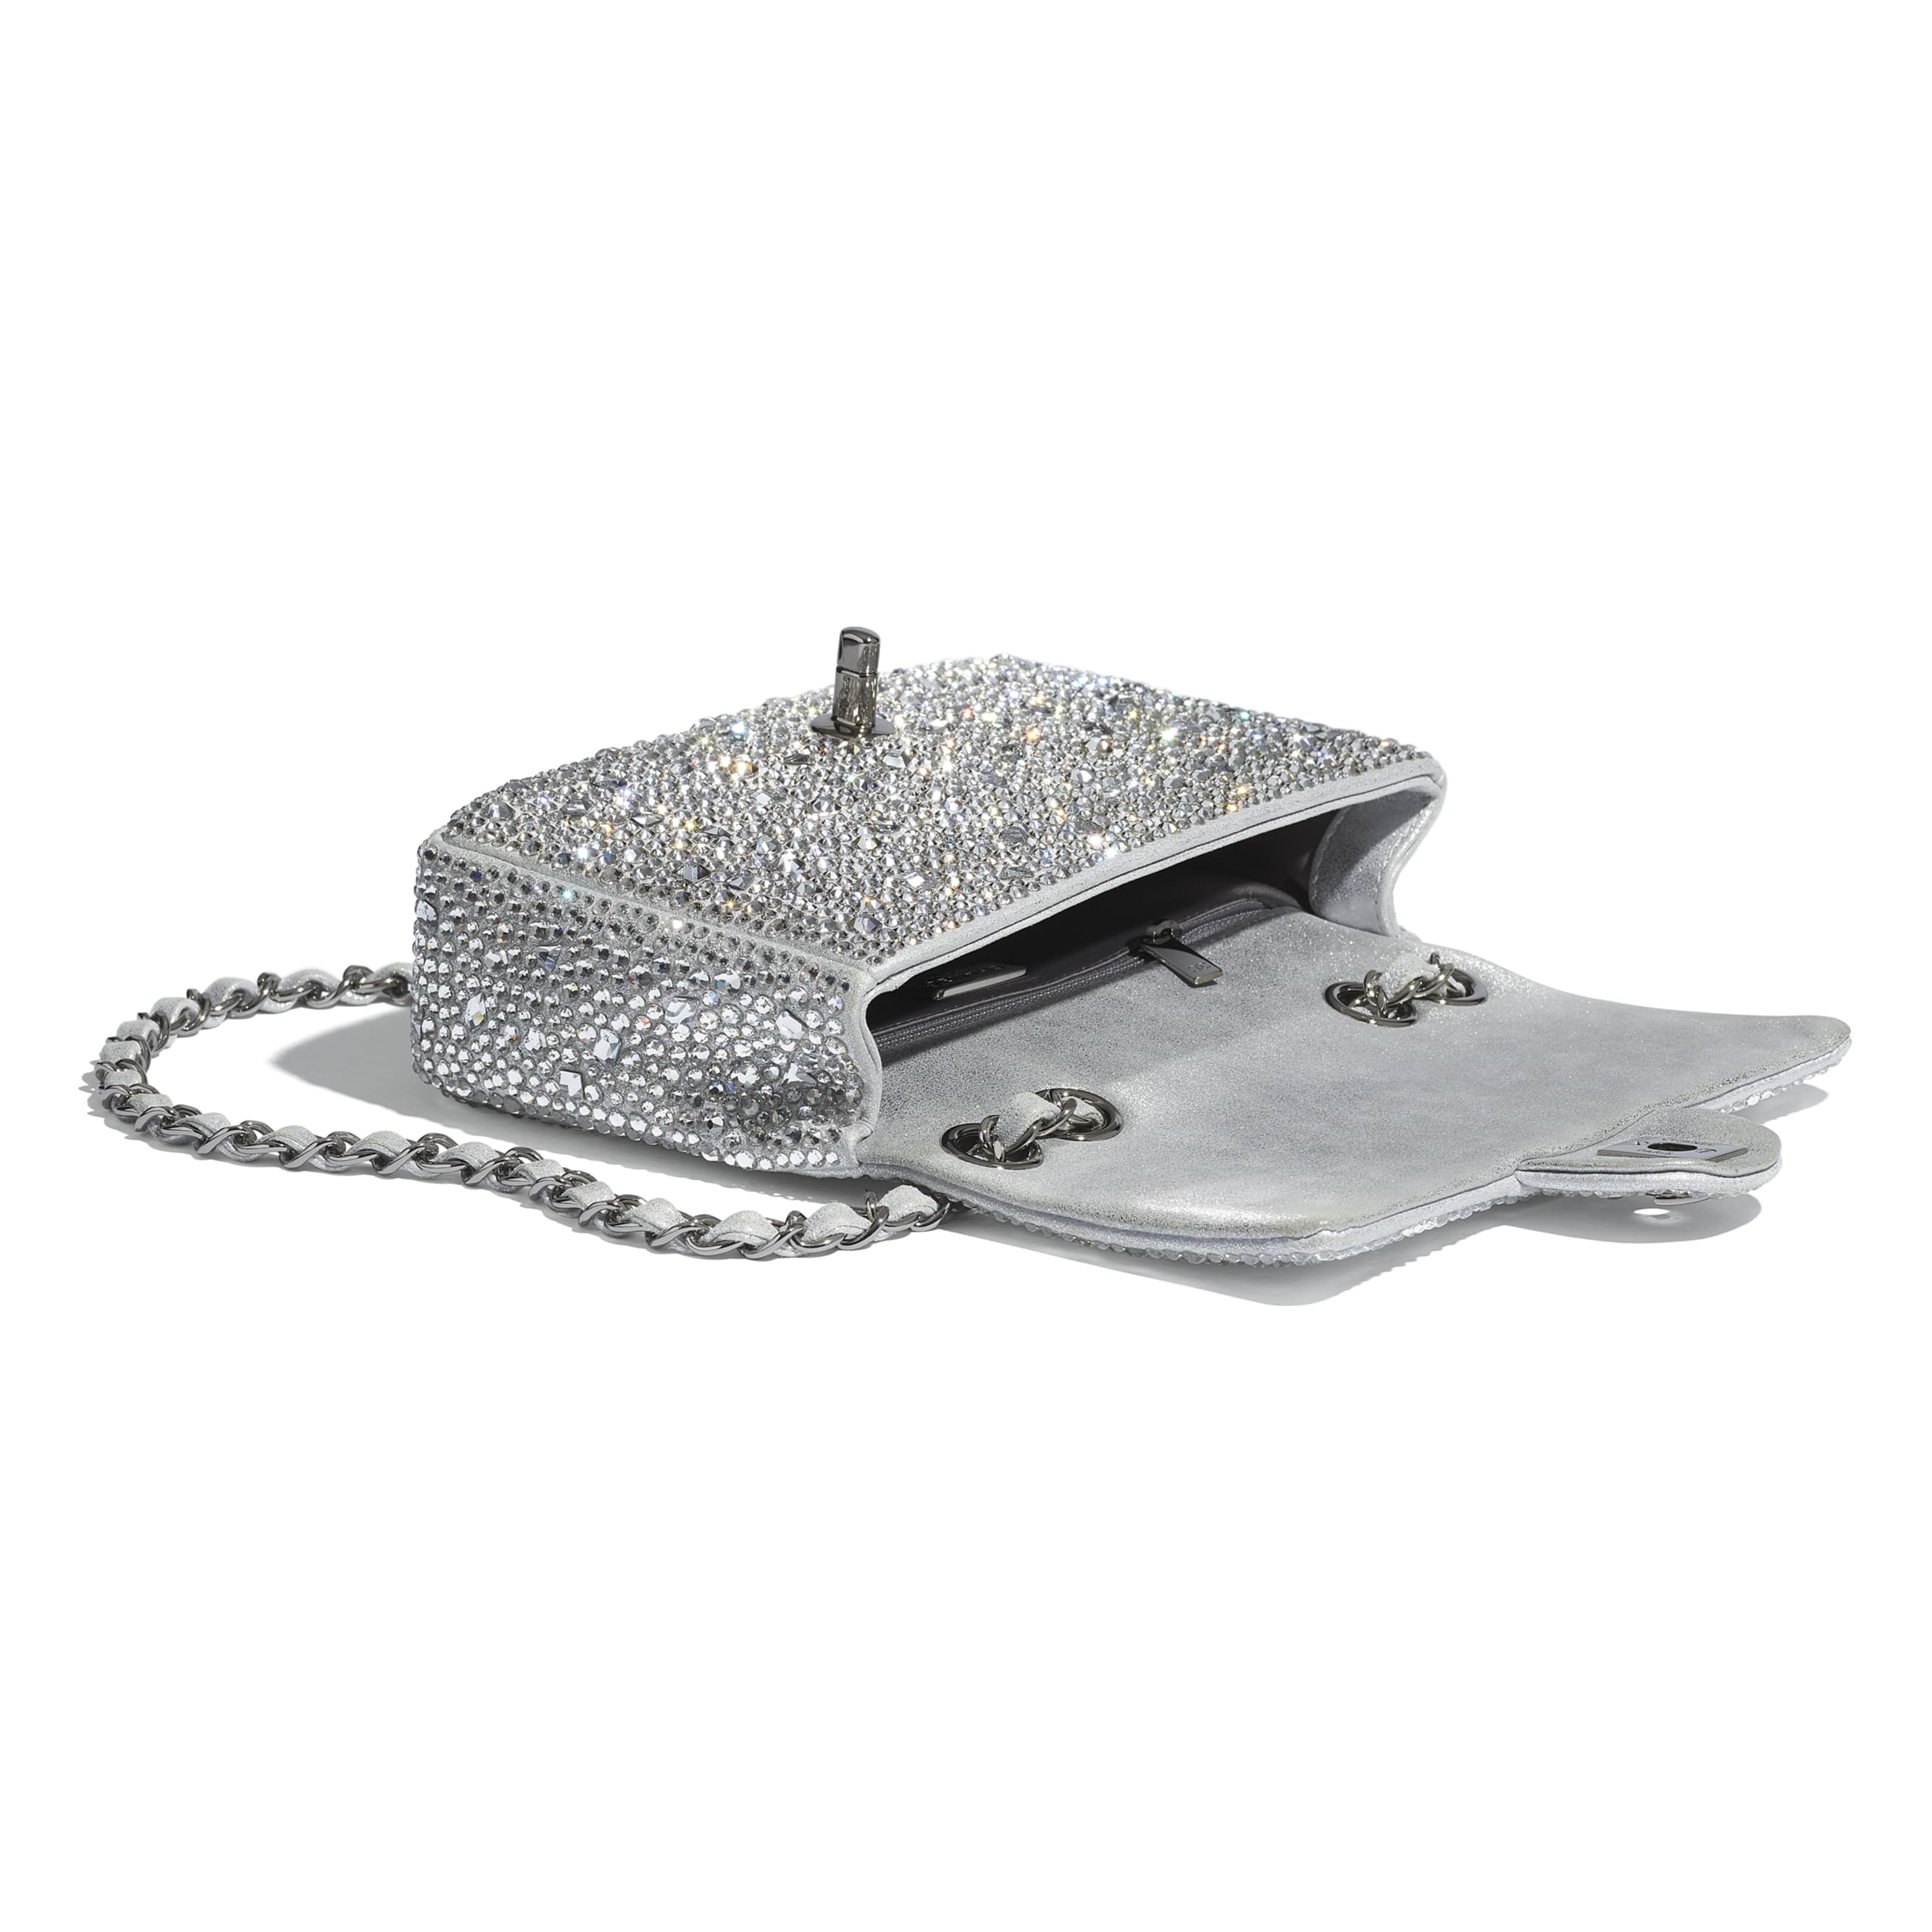 Flap Bag - Silver - Strass, Lambskin & Ruthenium-Finish Metal - CHANEL - Other view - see standard sized version